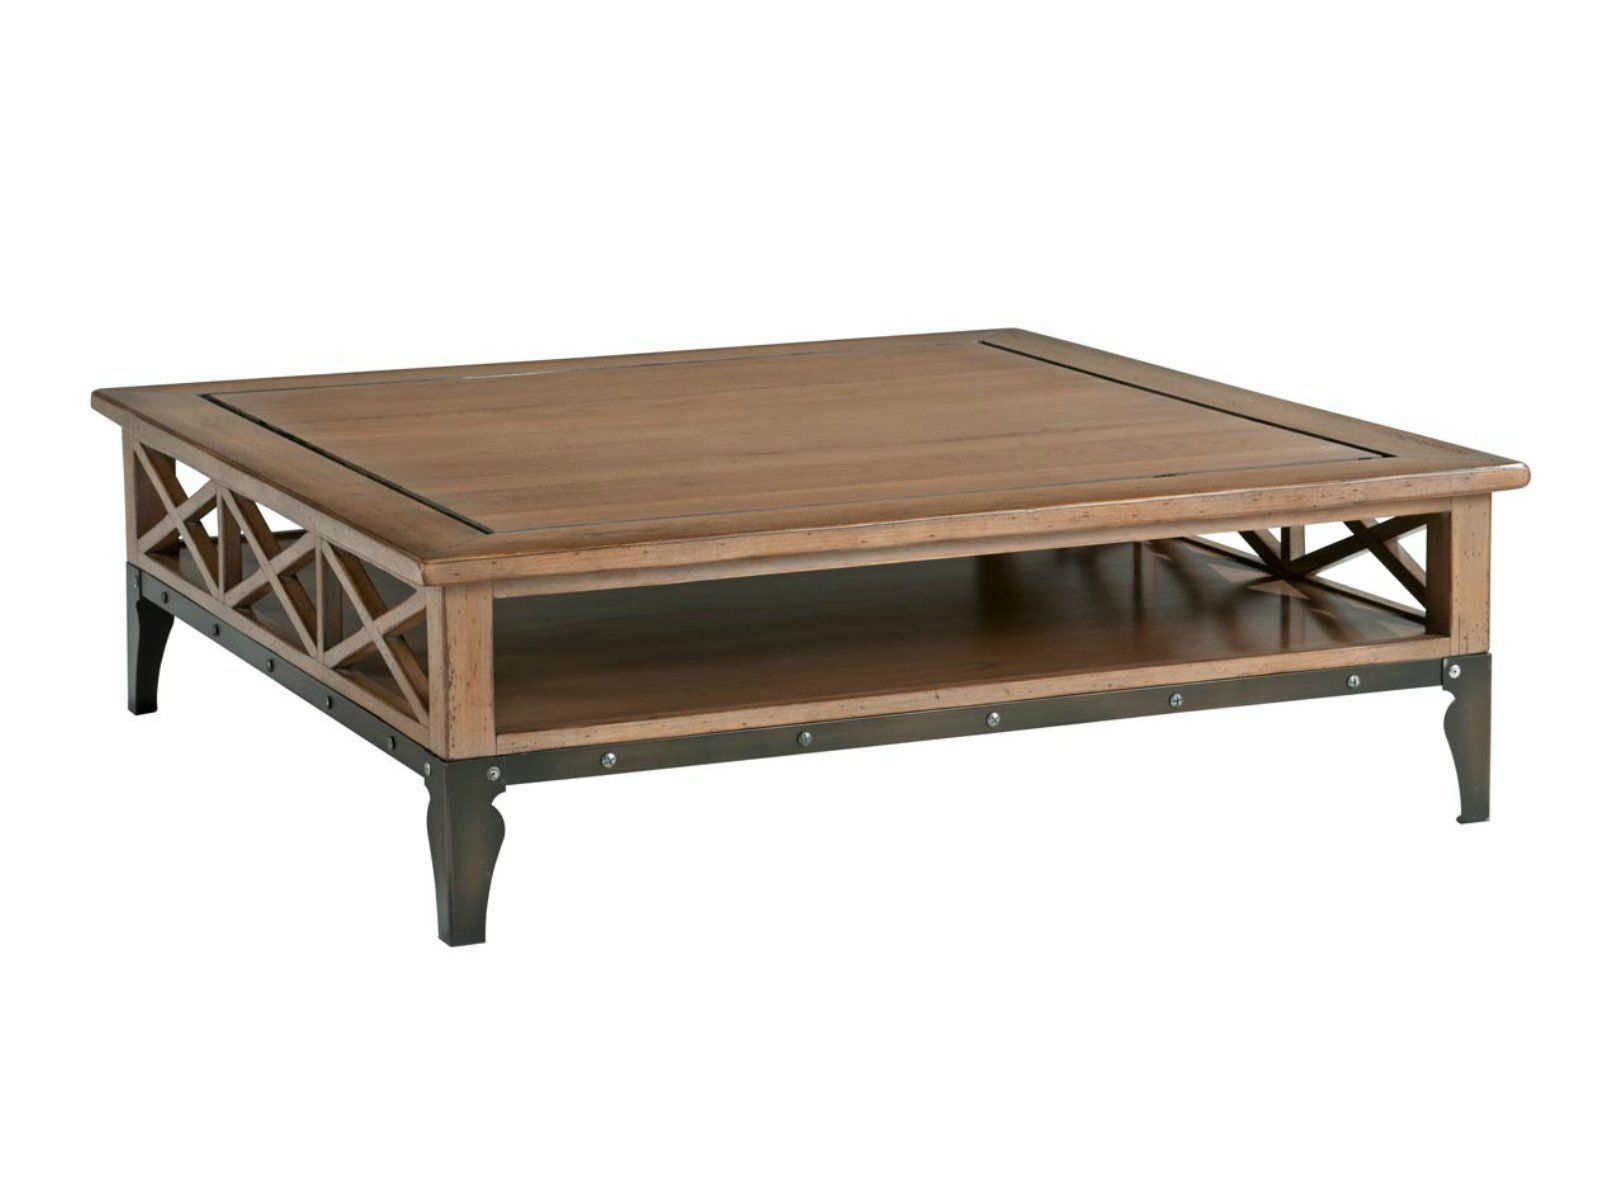 Square cherry wood coffee table ARCHITECTE